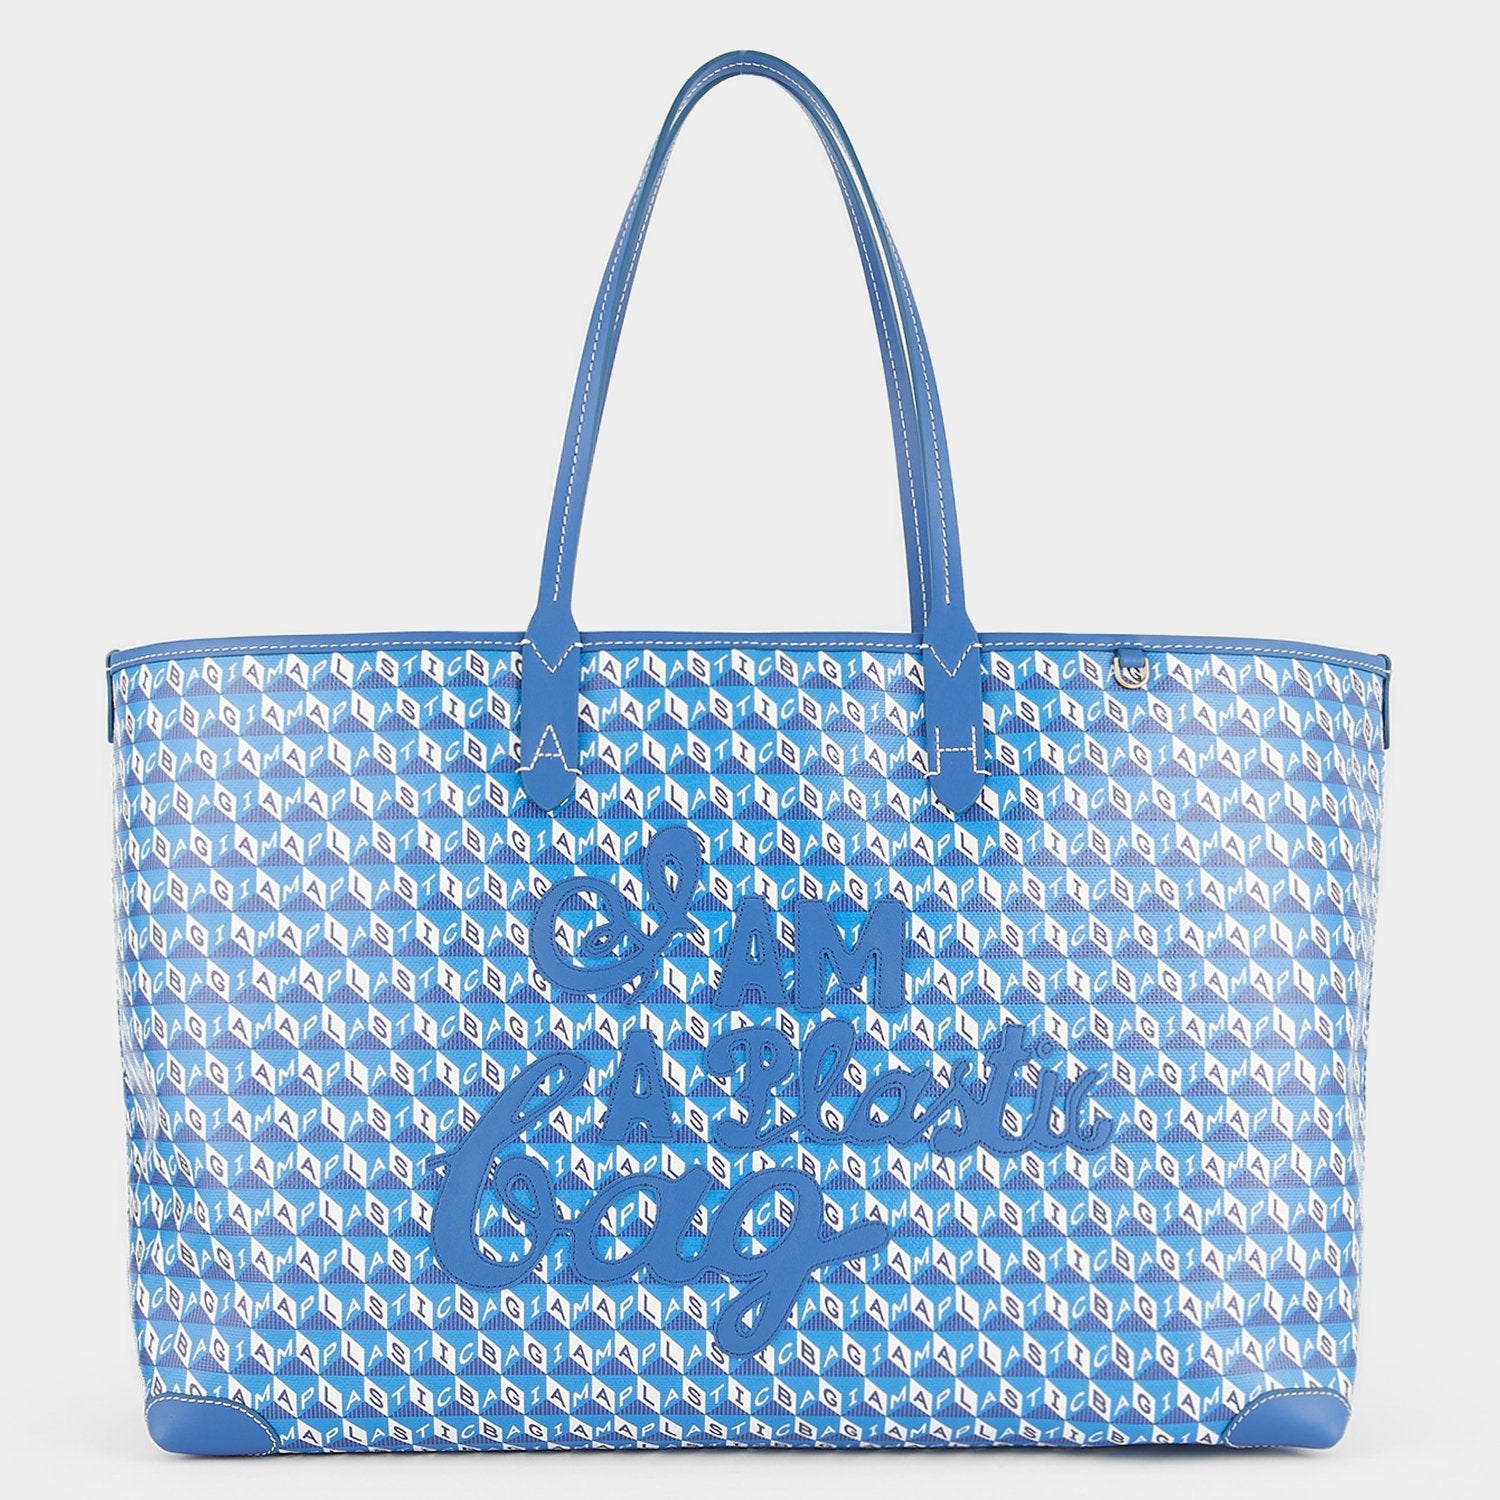 I Am A Plastic Bag Motif Tote